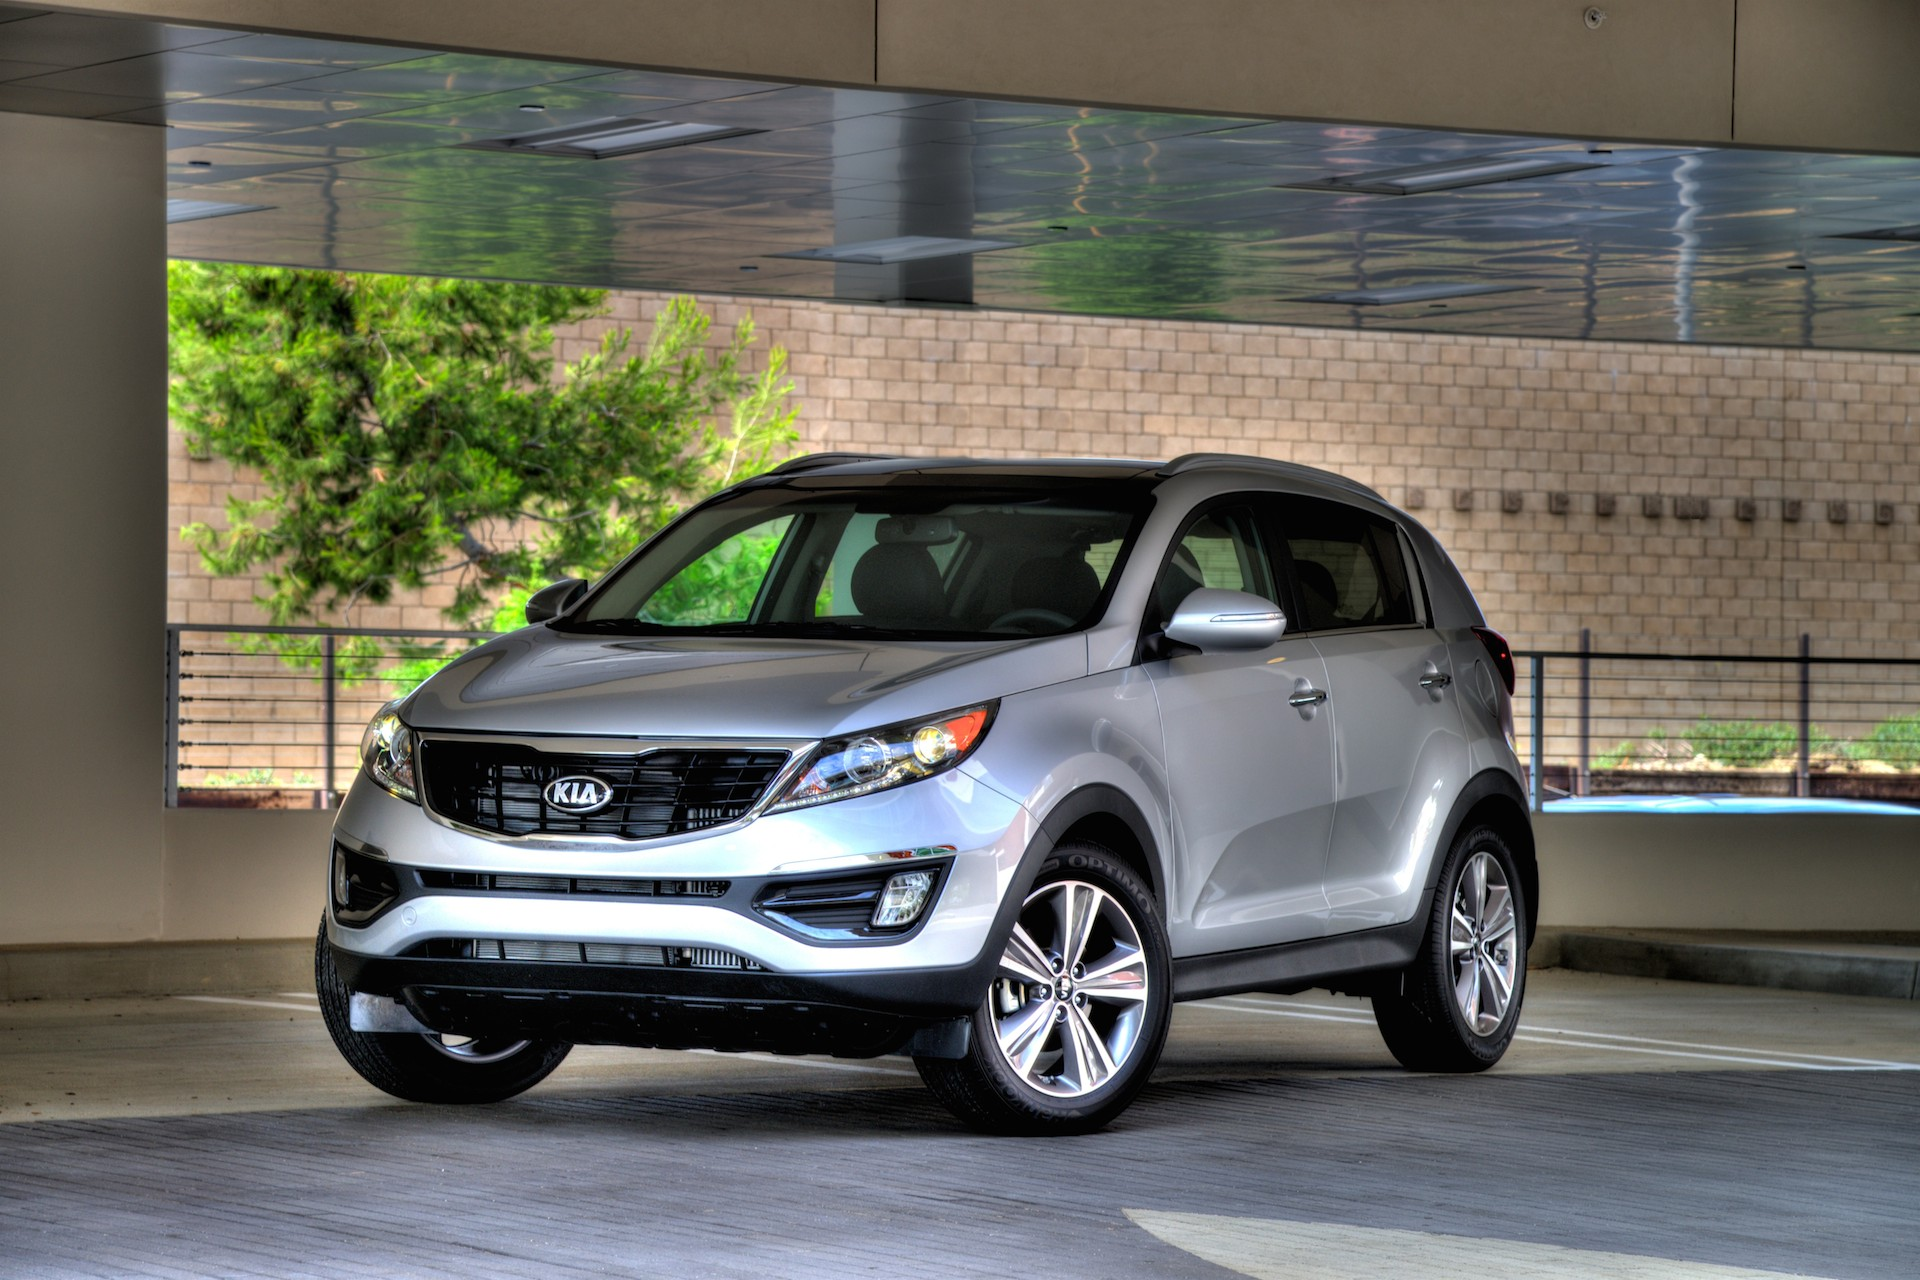 2015 Kia Sportage Review Ratings Specs Prices And